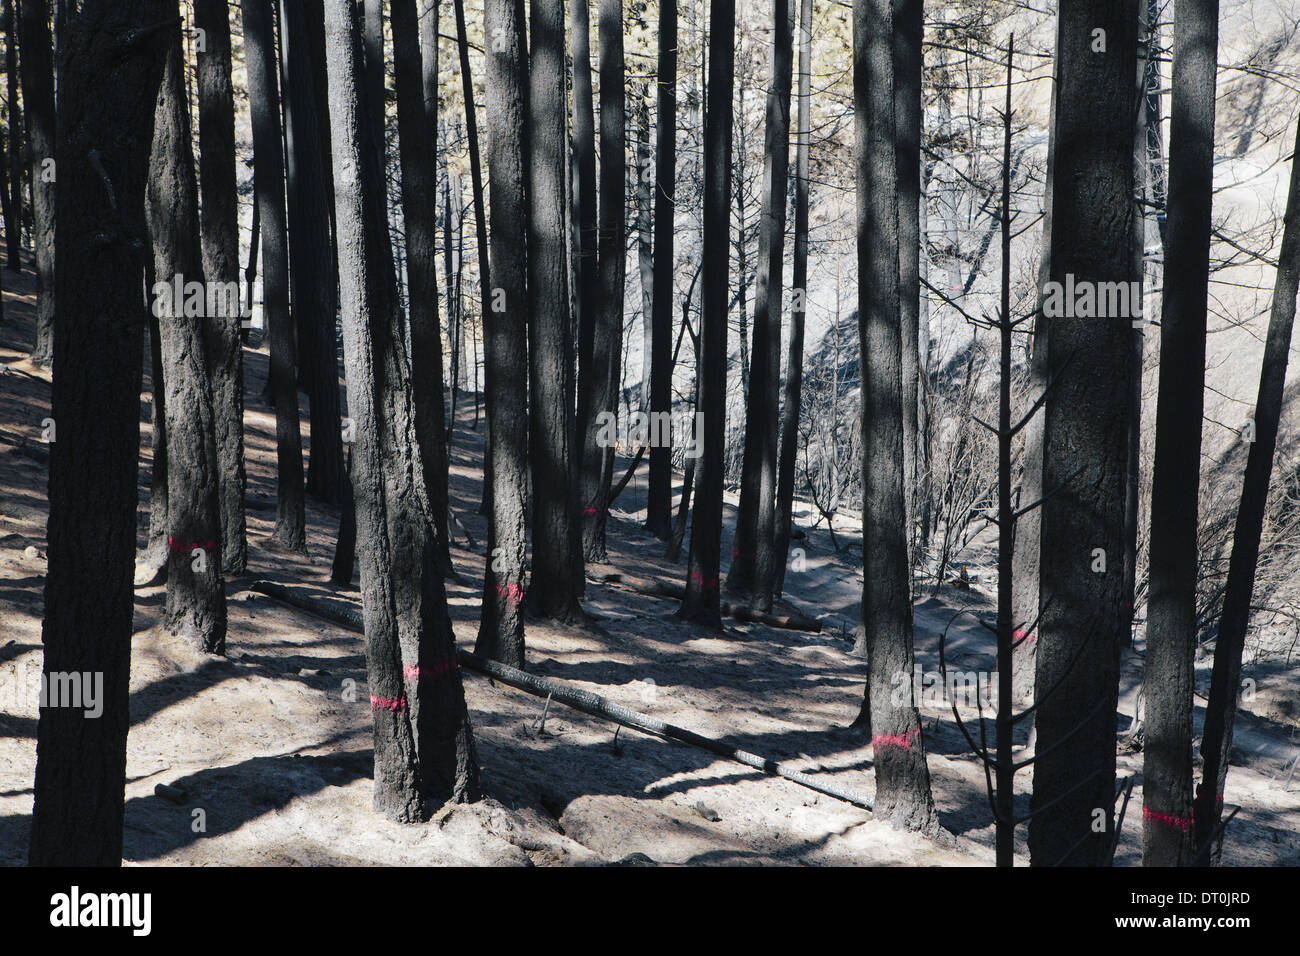 Washington state USA burnt trees for cutting Taylor Bridge forest fire - Stock Image